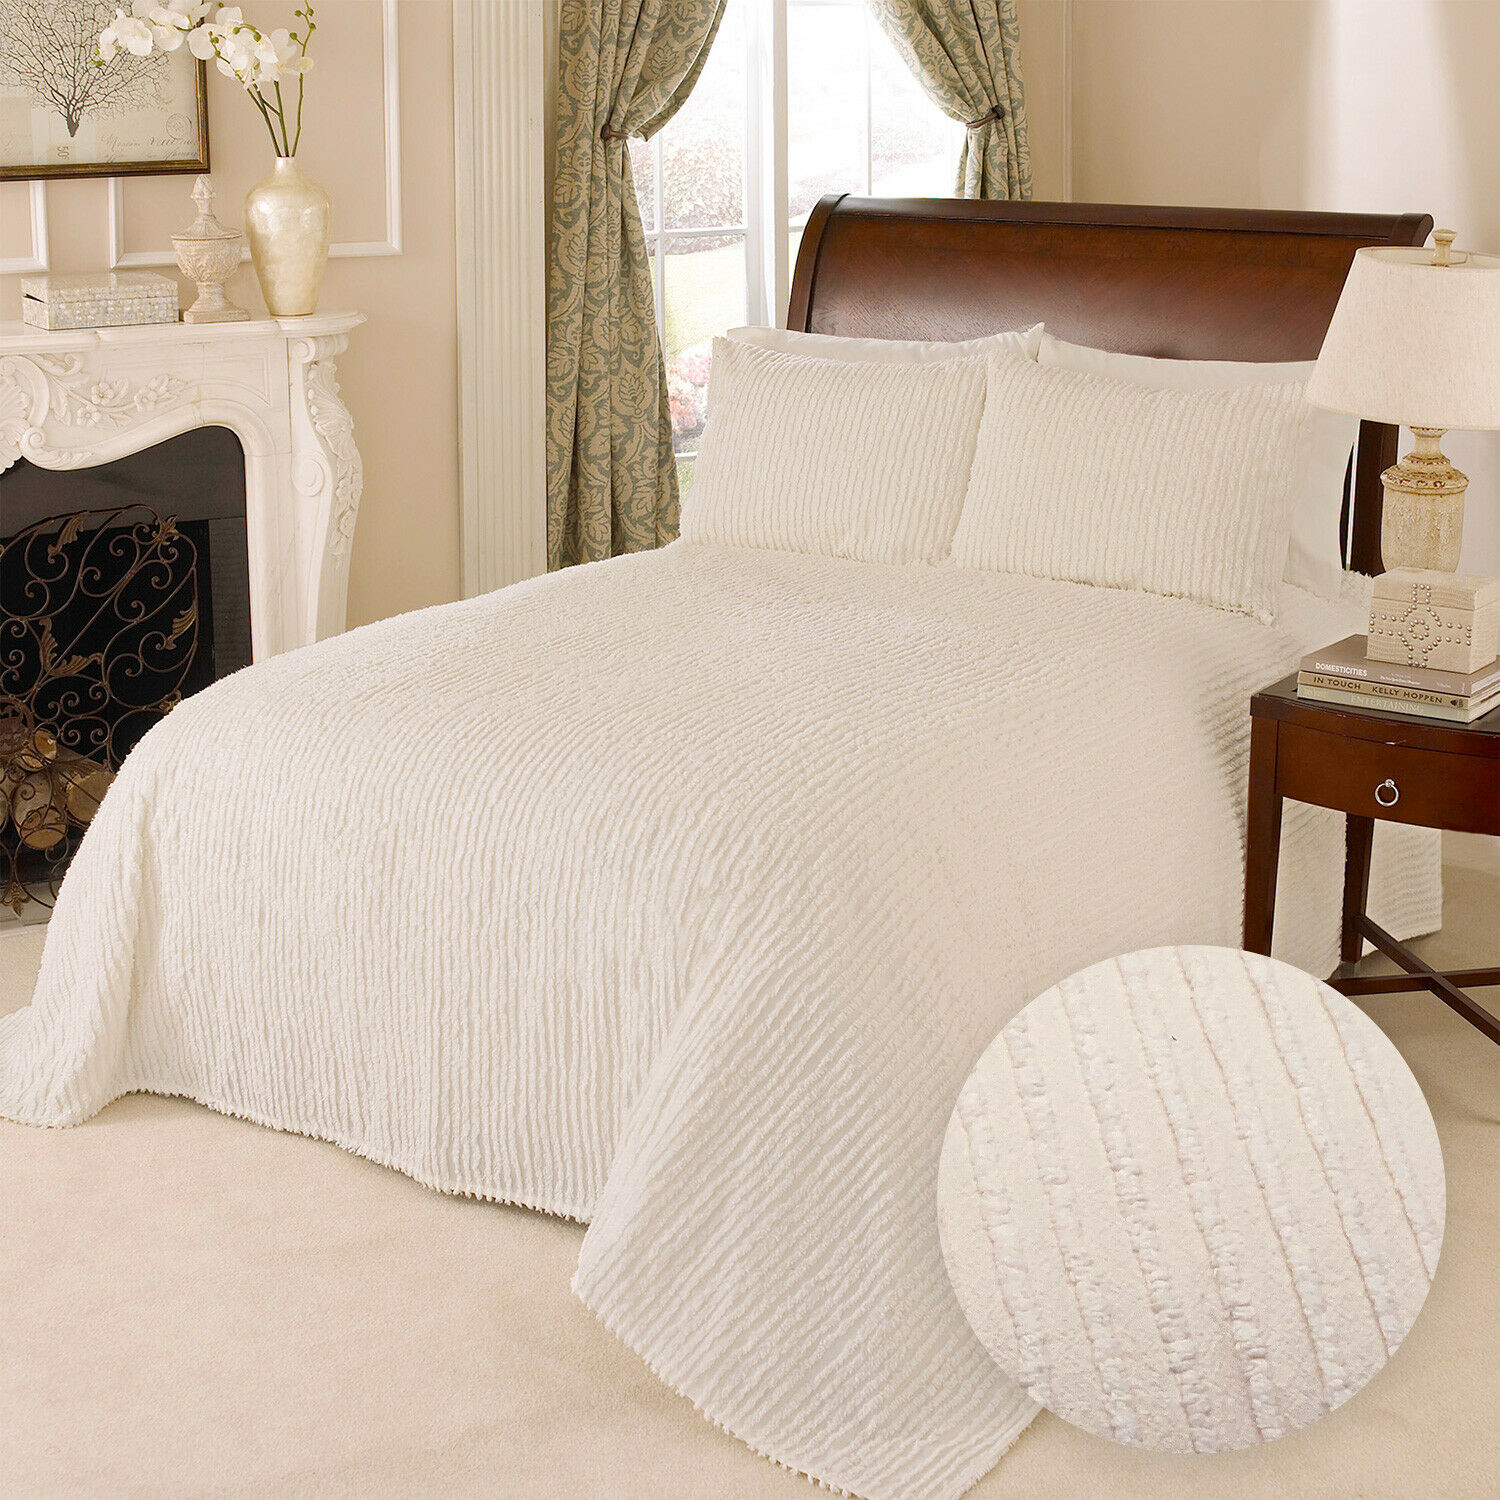 100% Cotton Tufted Chenille Stripe Bedspread Bedding Twin Full Queen King, Ivory Bedding